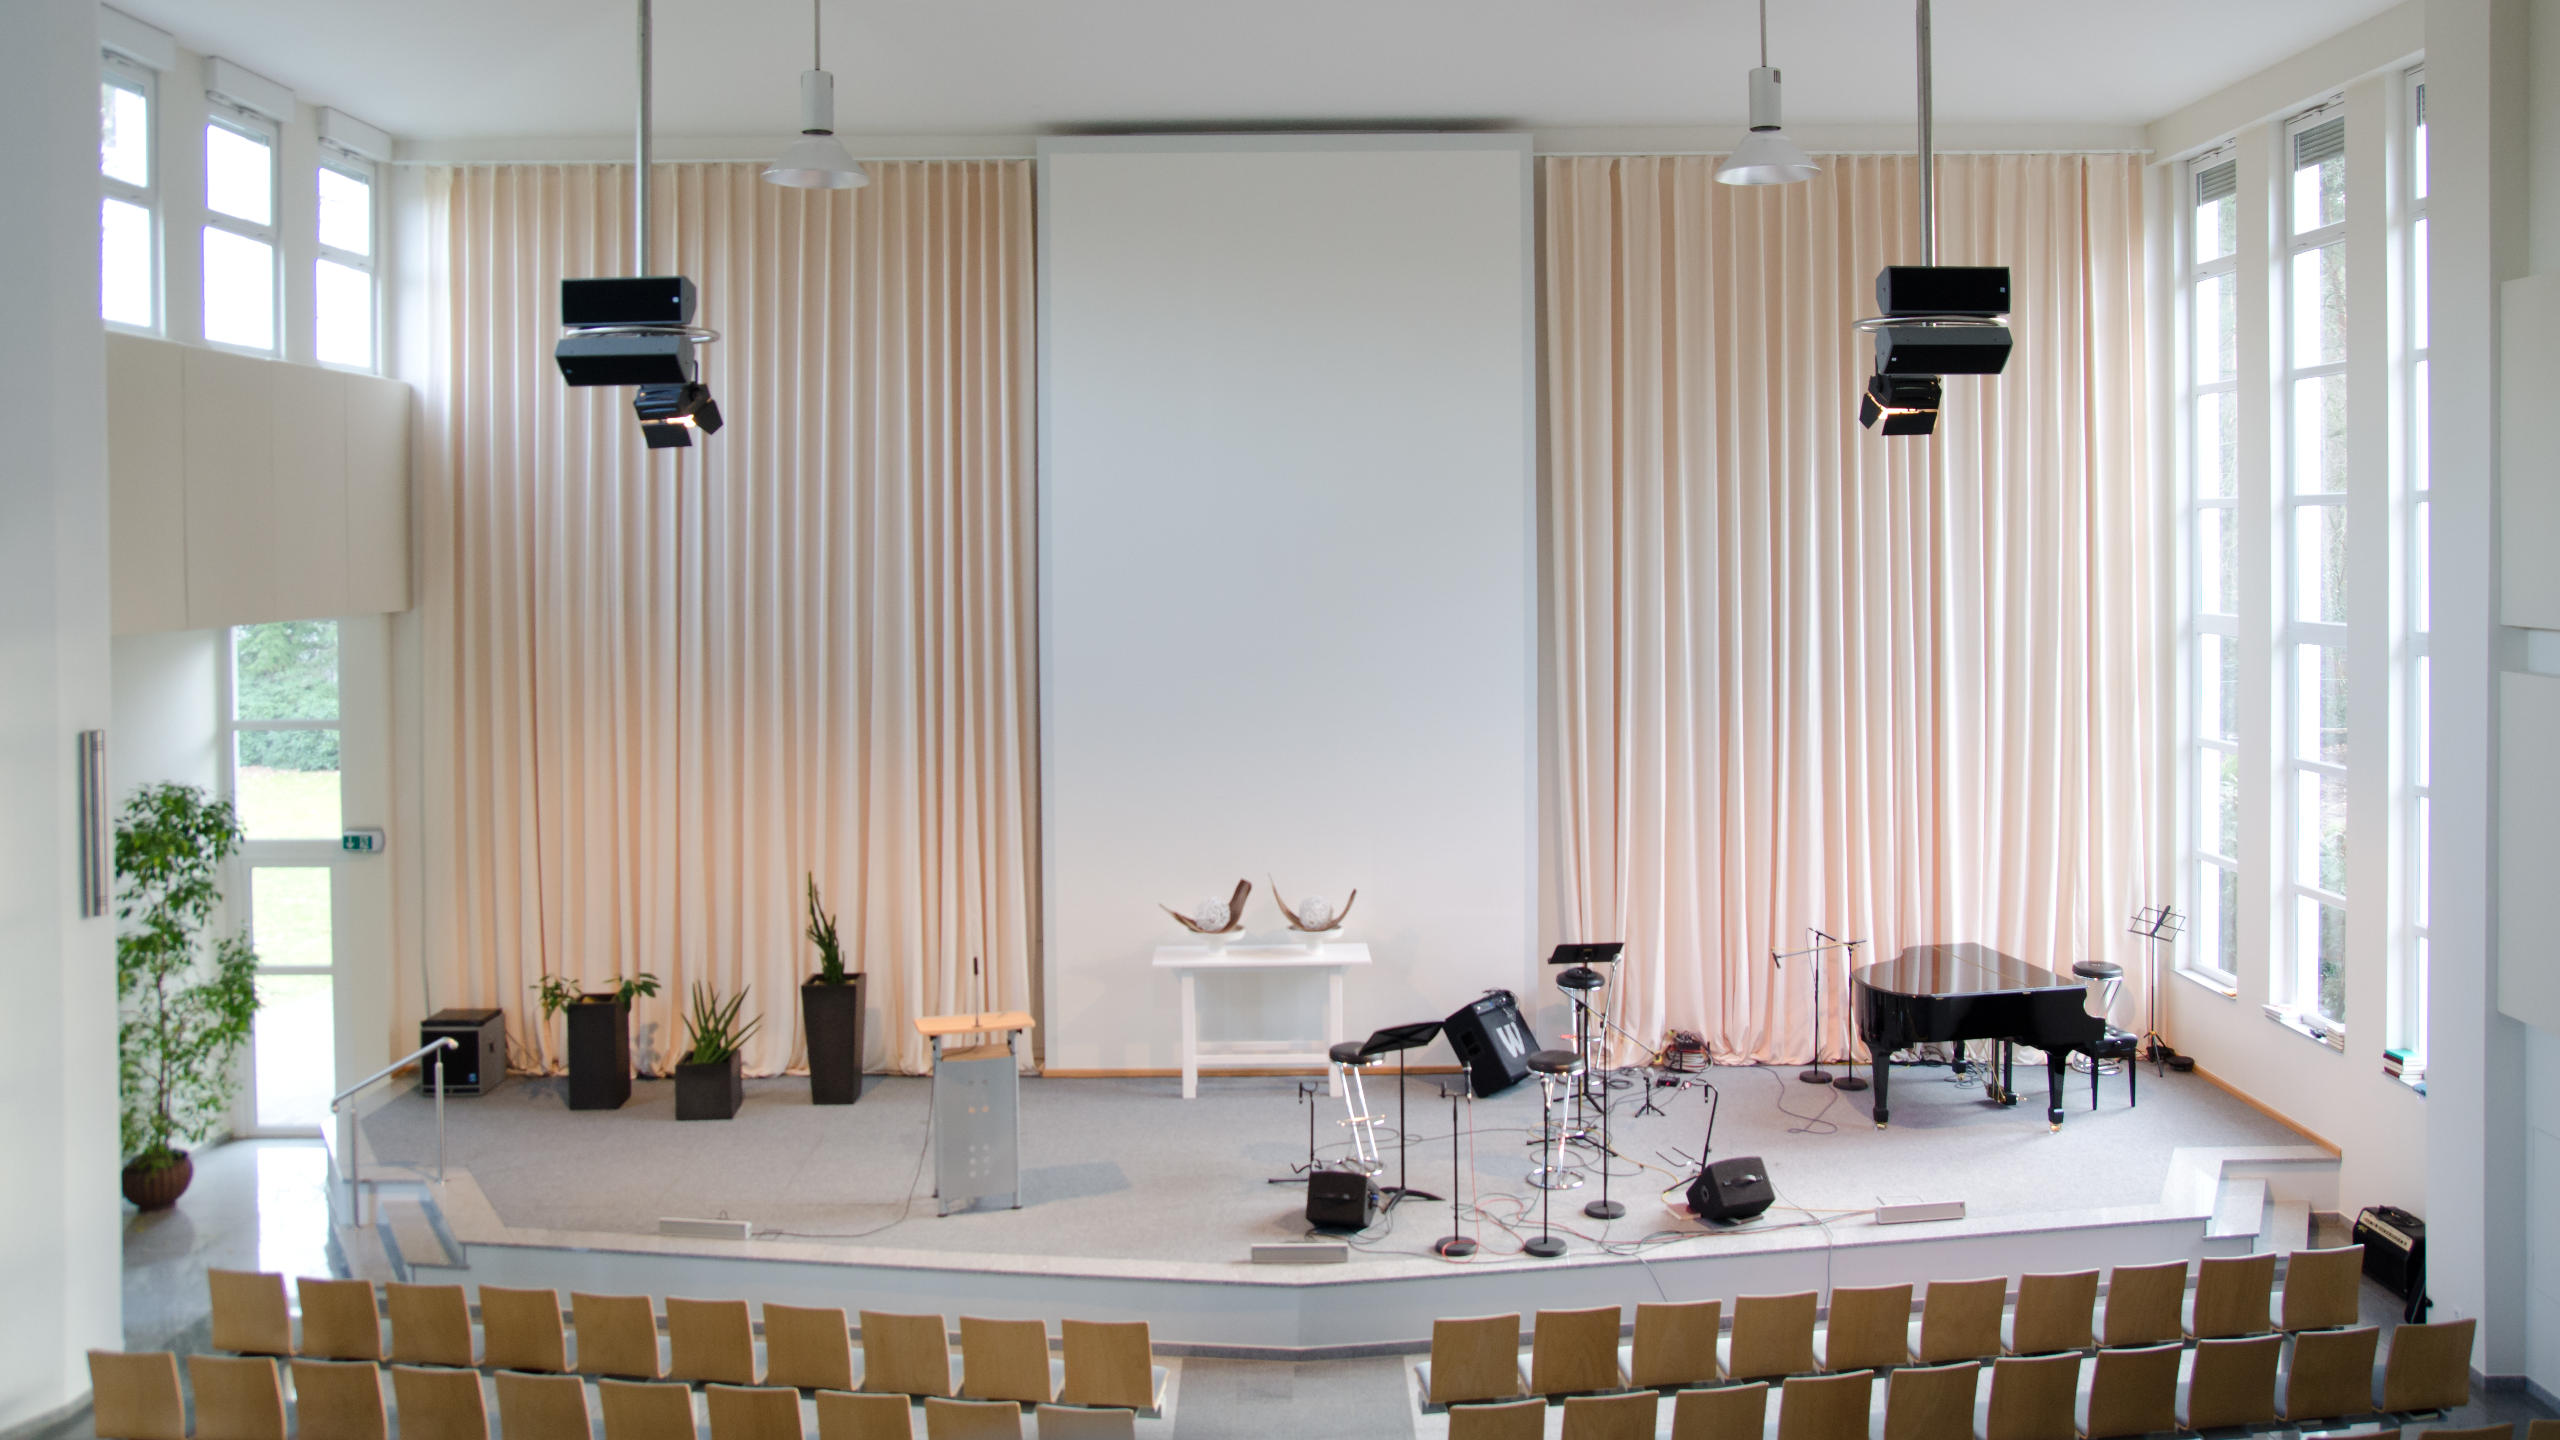 Sound absorbing curtains type AV12 on stage